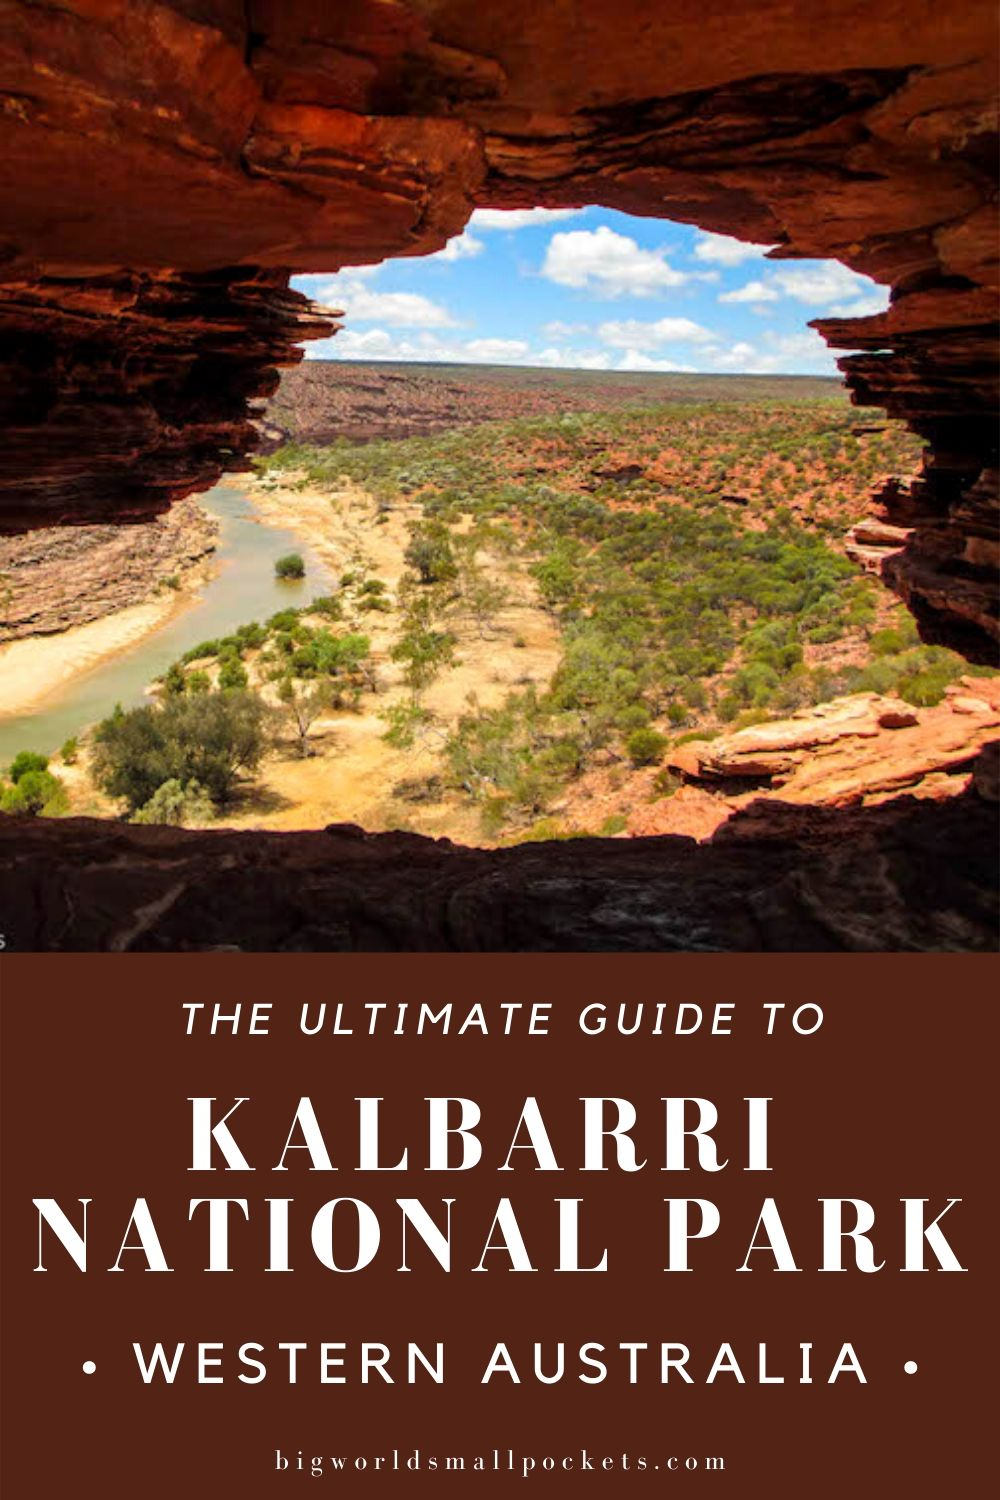 The Ultimate Guide To Visiting Kalbarri National Park in Western Australia